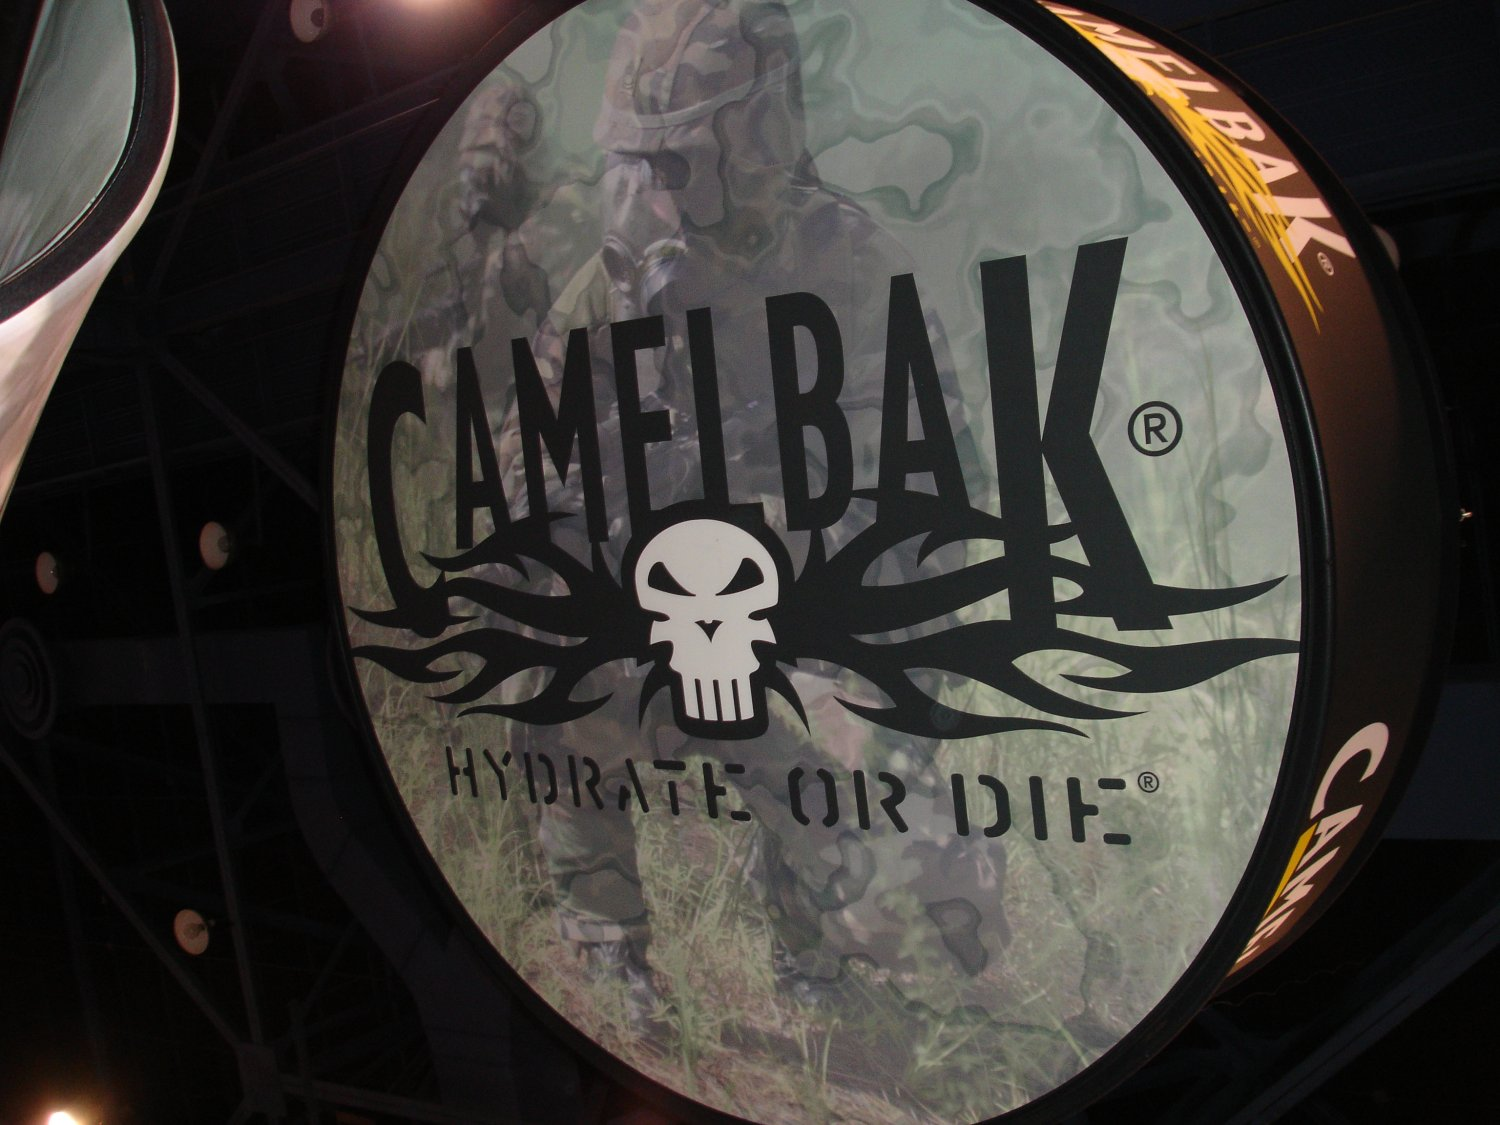 Camelbak%20%27Hydrate%20or%20Die%27 3 <!  :en  >CamelBak Gears Up for U.S. Military SPECOPS and Chemical/Biological Warfare<!  :  >